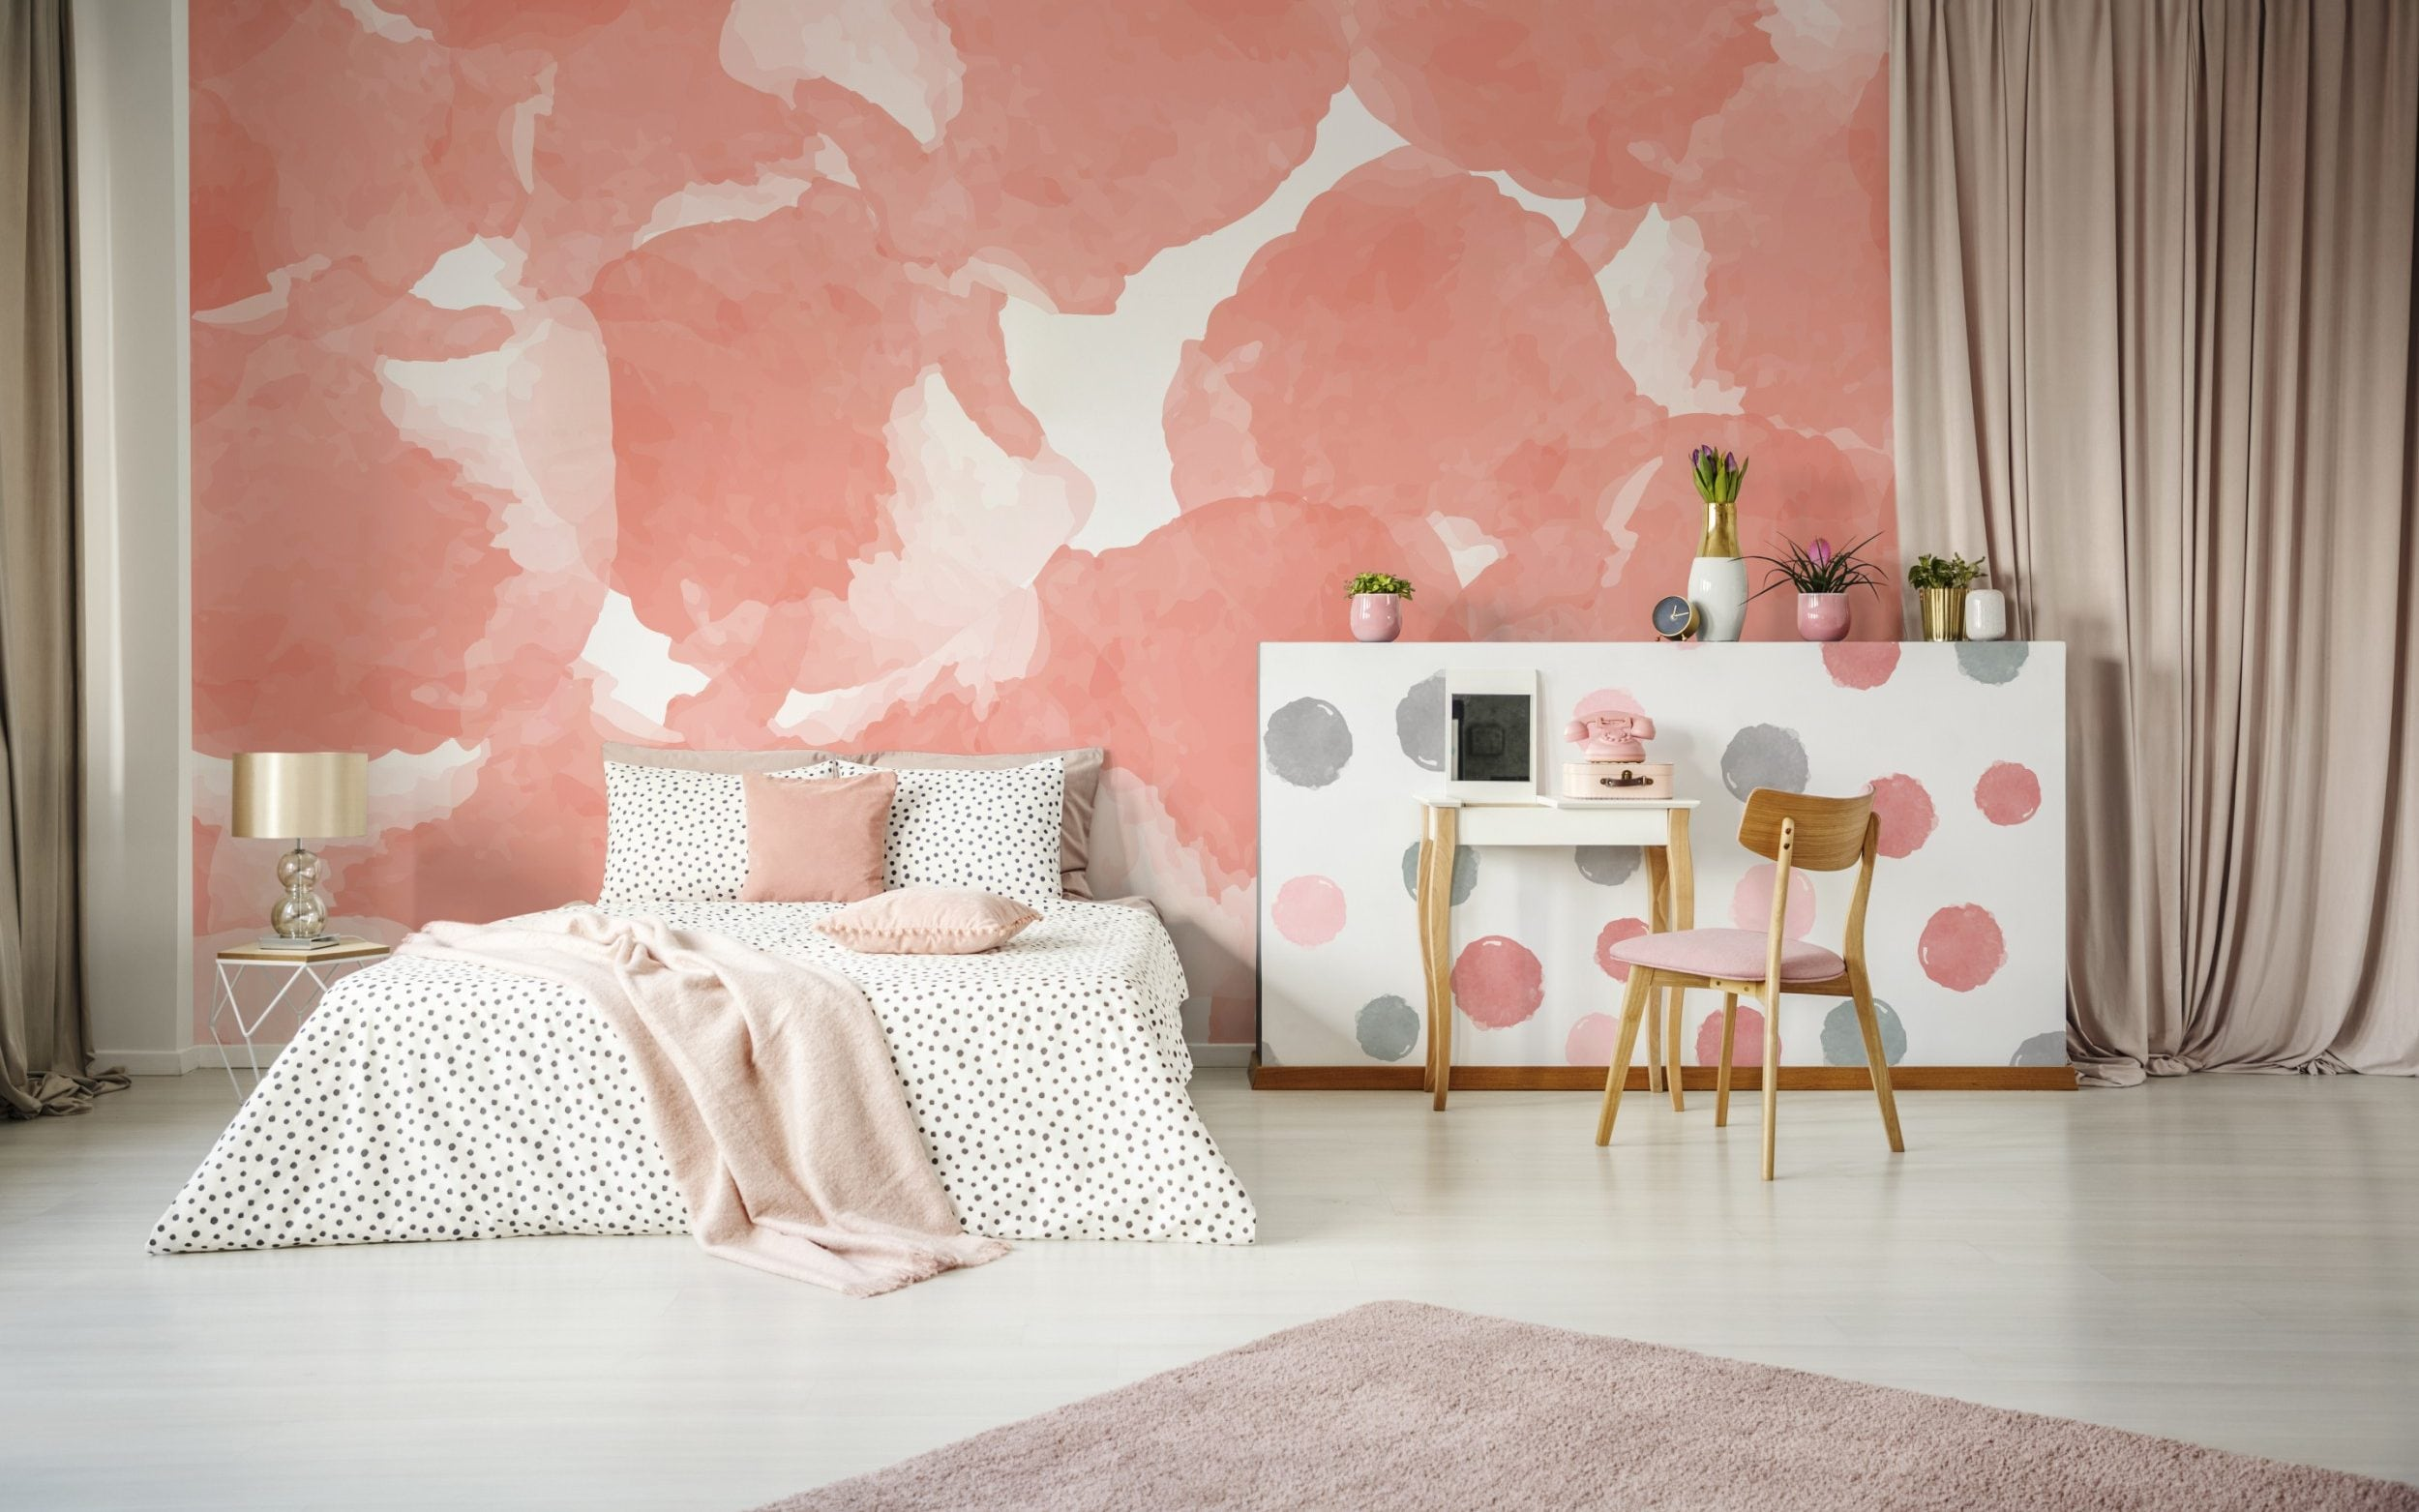 Coral is the new grey: the hottest interior trends of 2019